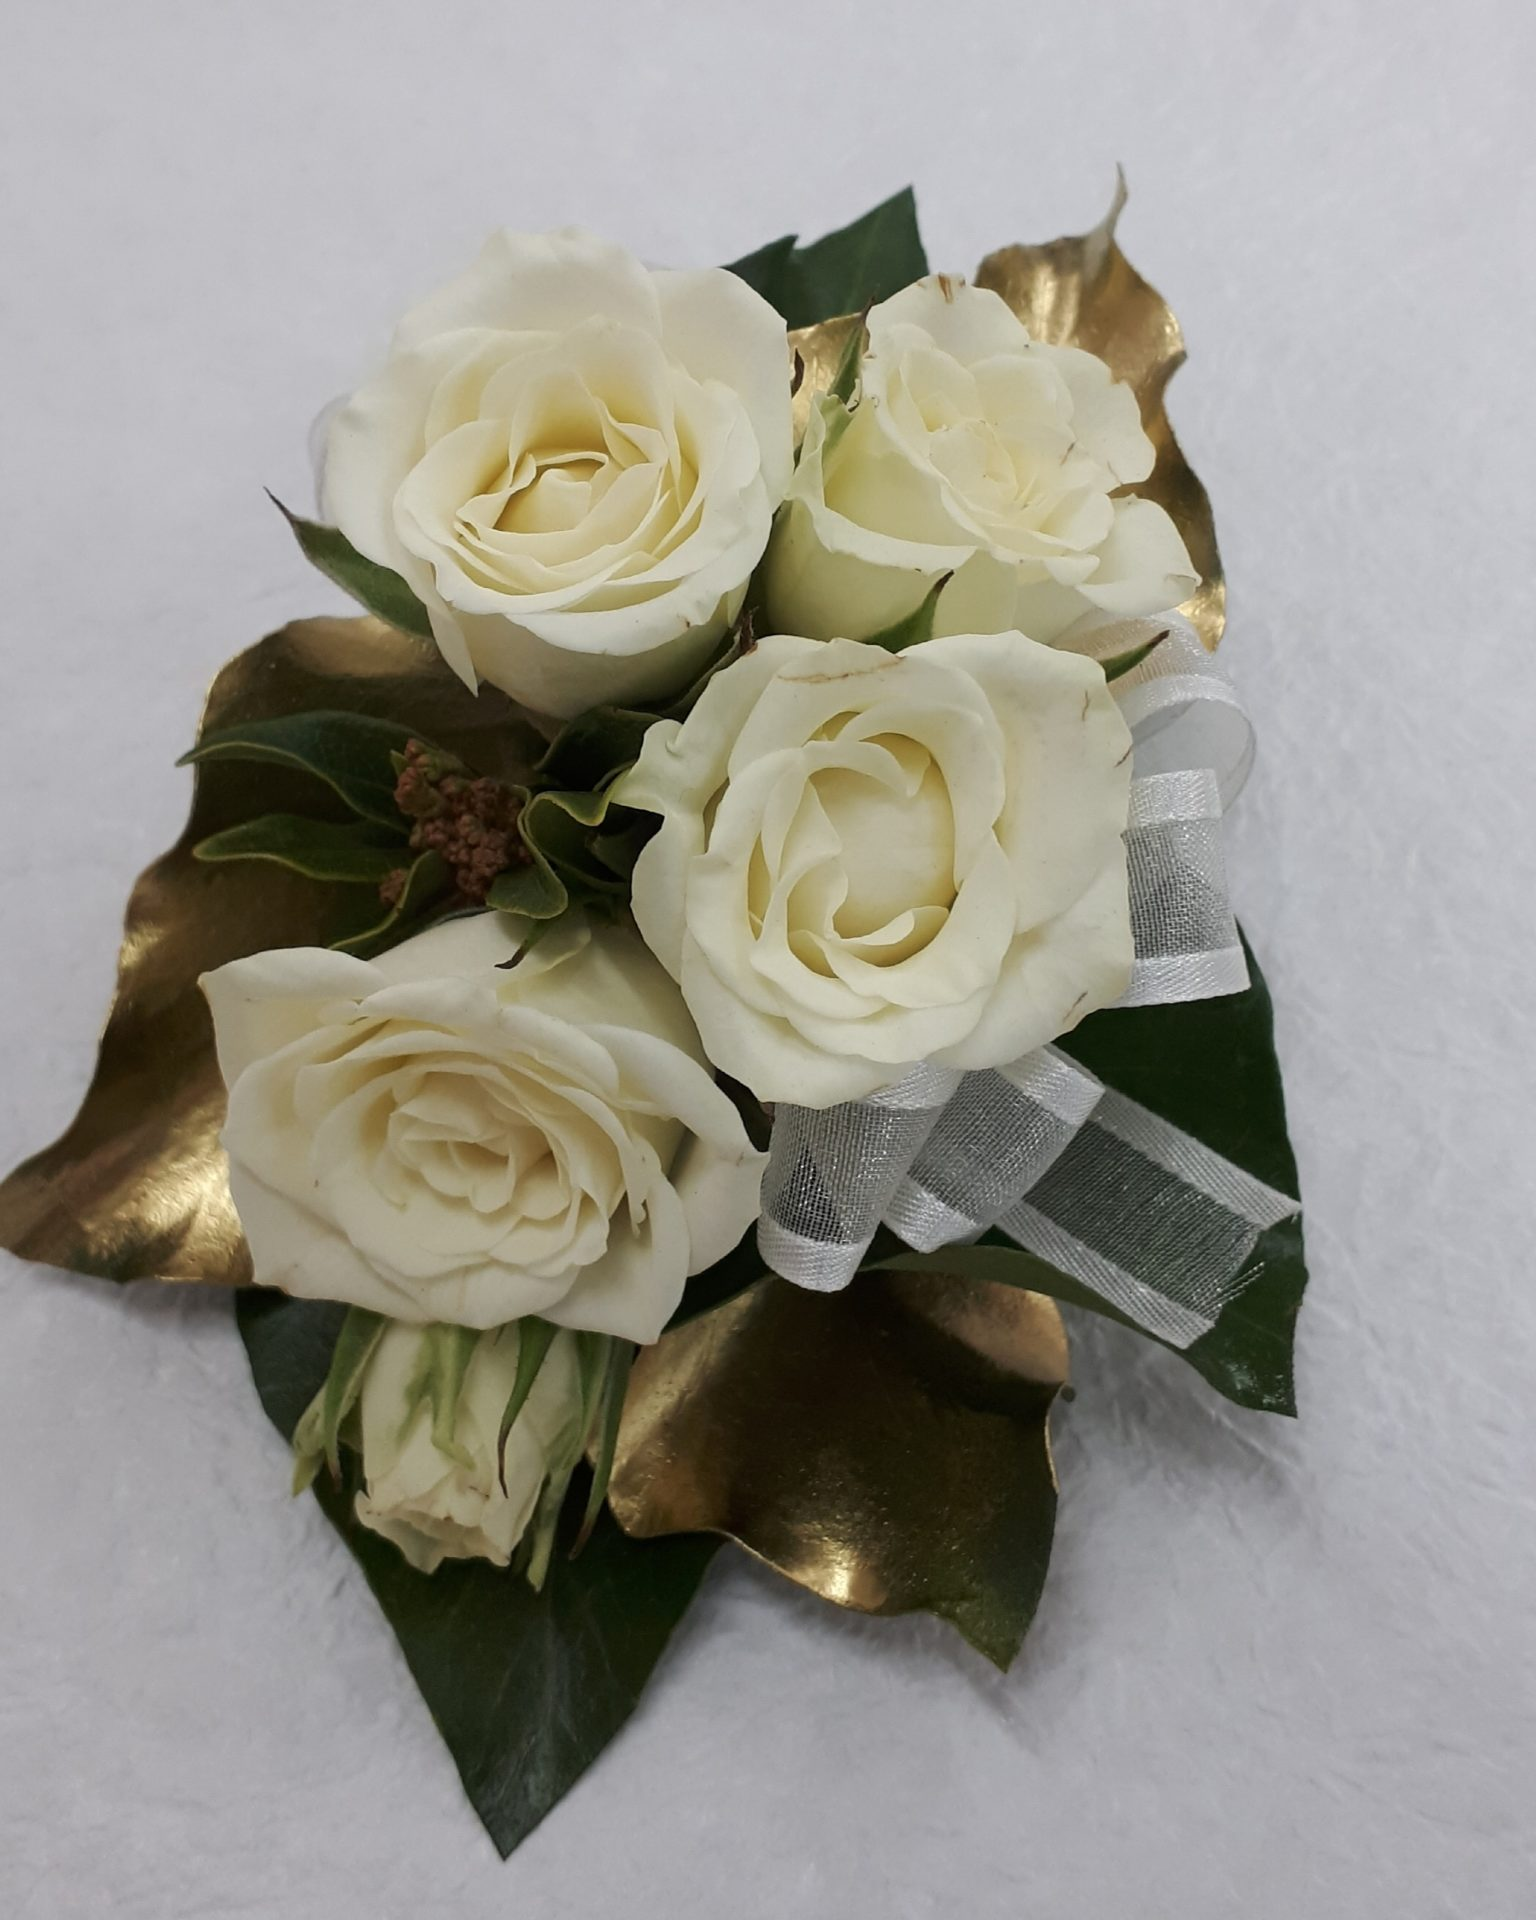 Roses with gold leaves and ribbon corsage